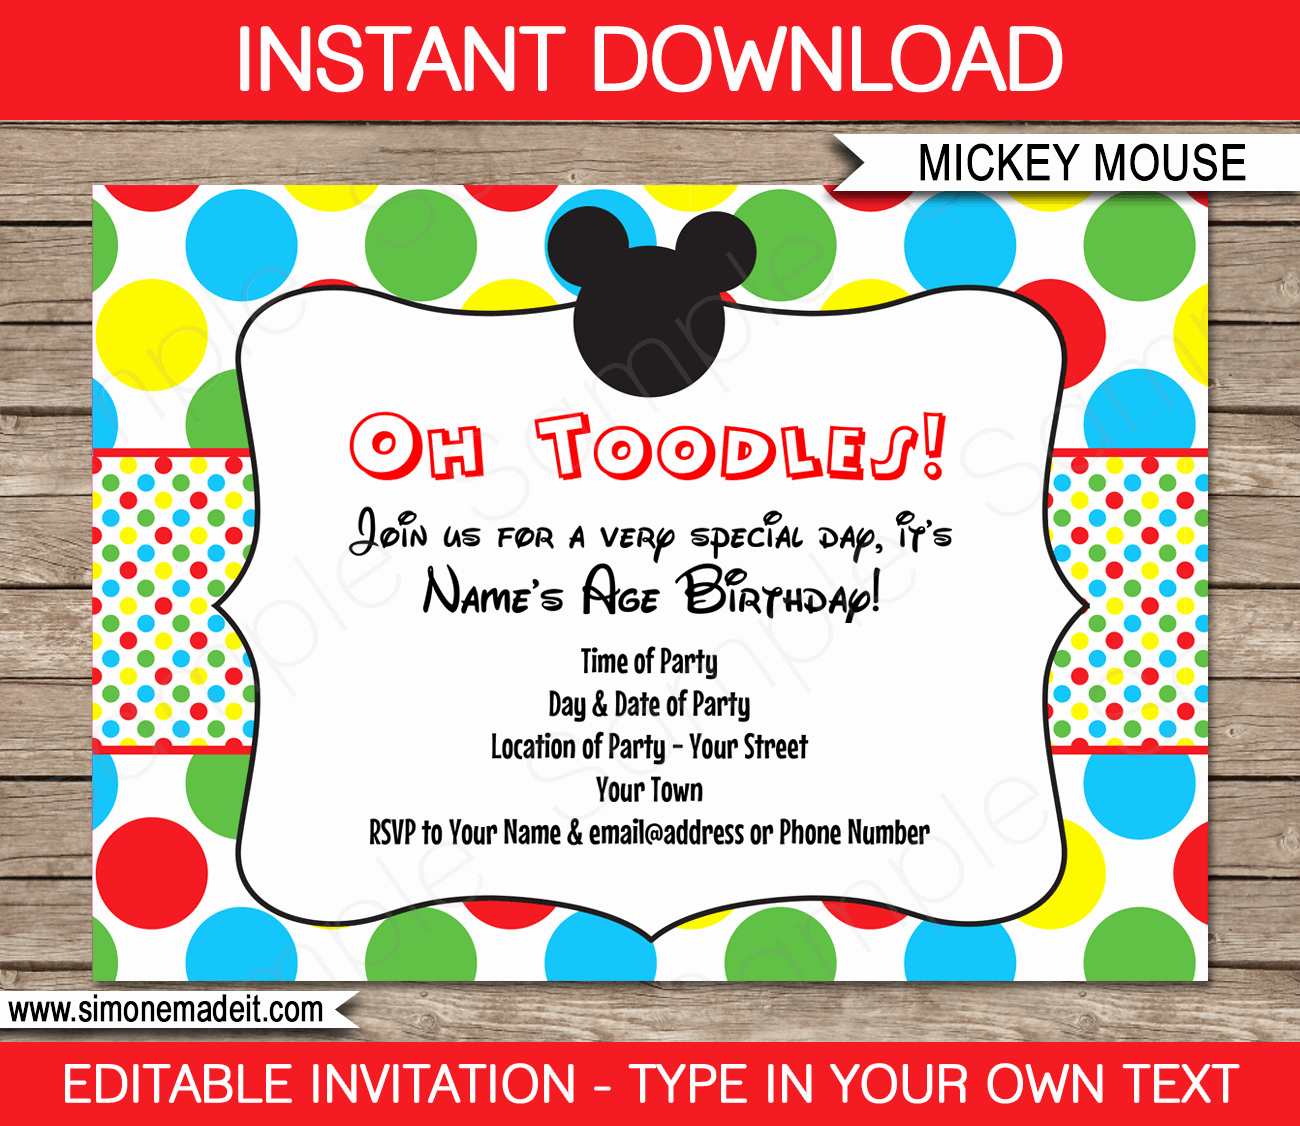 Mickey Mouse Birthday Invitation Template New Mickey Mouse Party Invitations Template